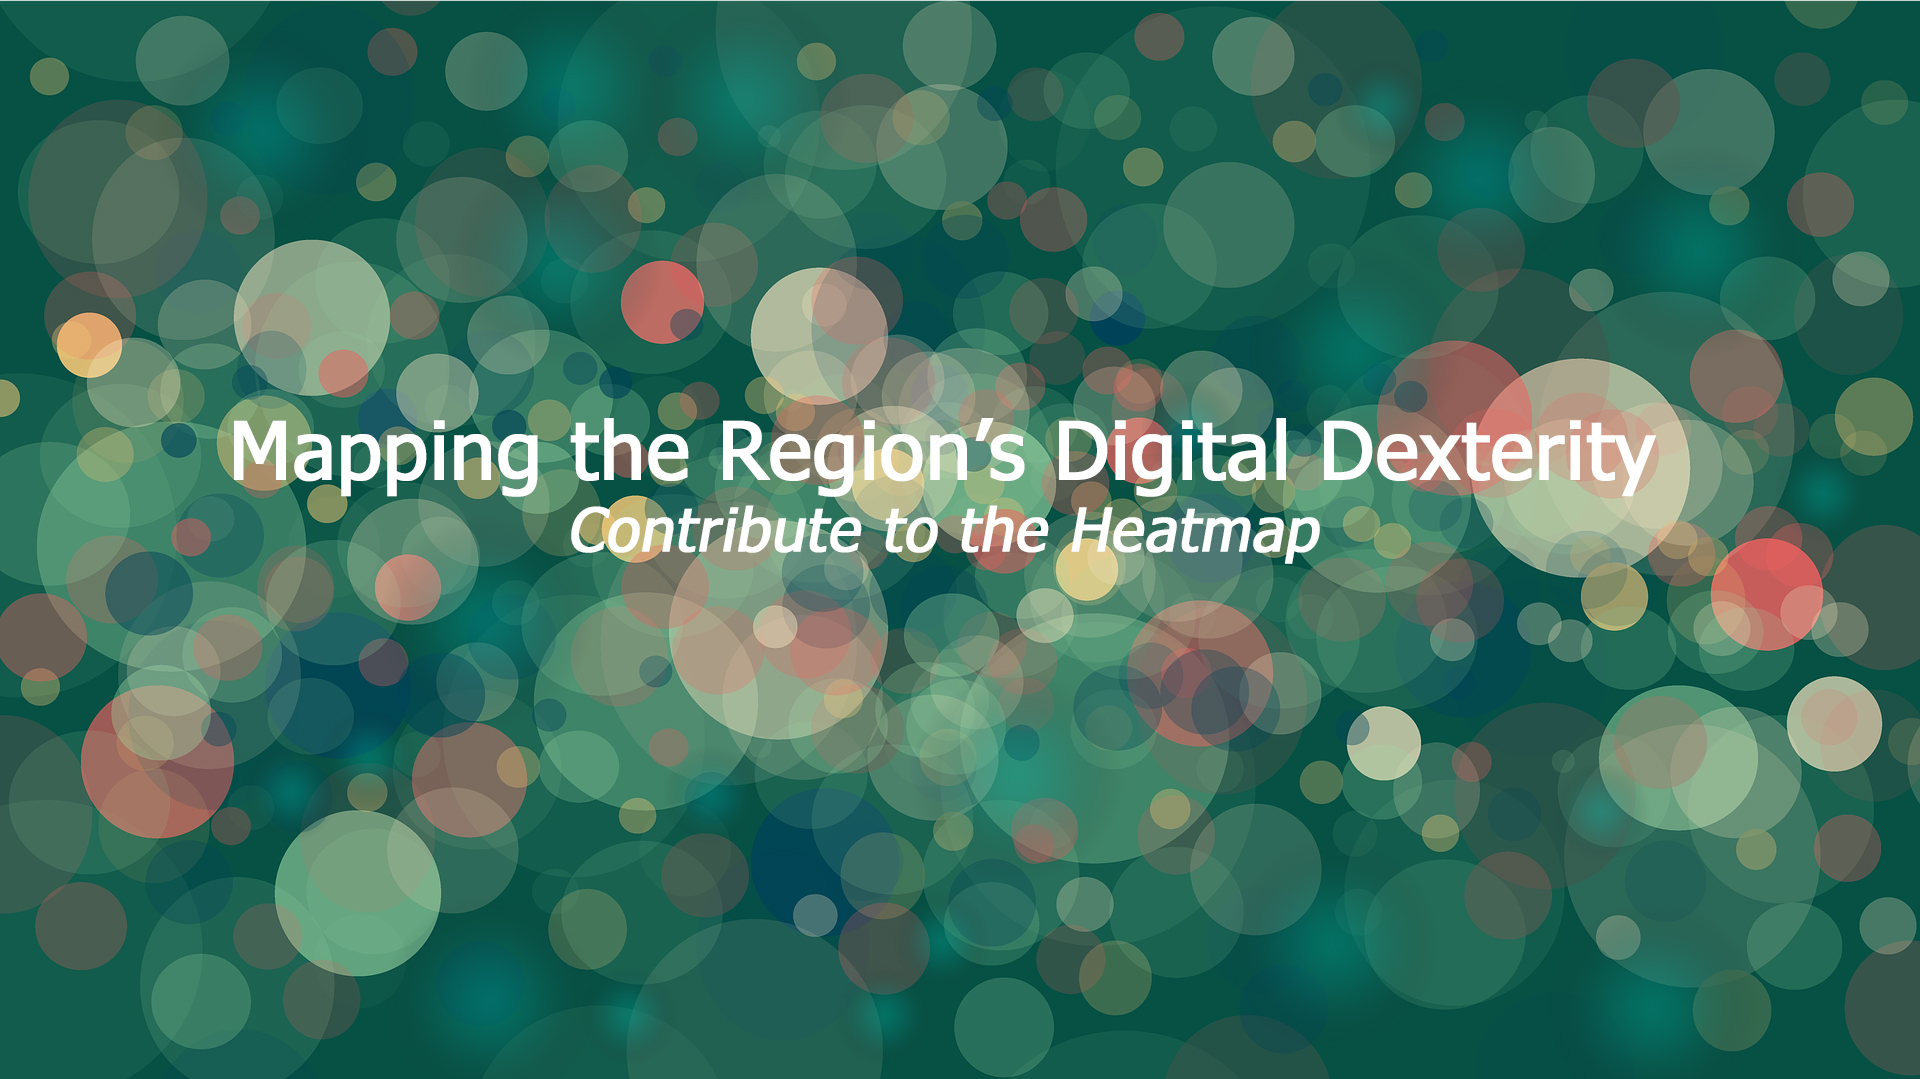 Mapping the Region's Digital Dexterity